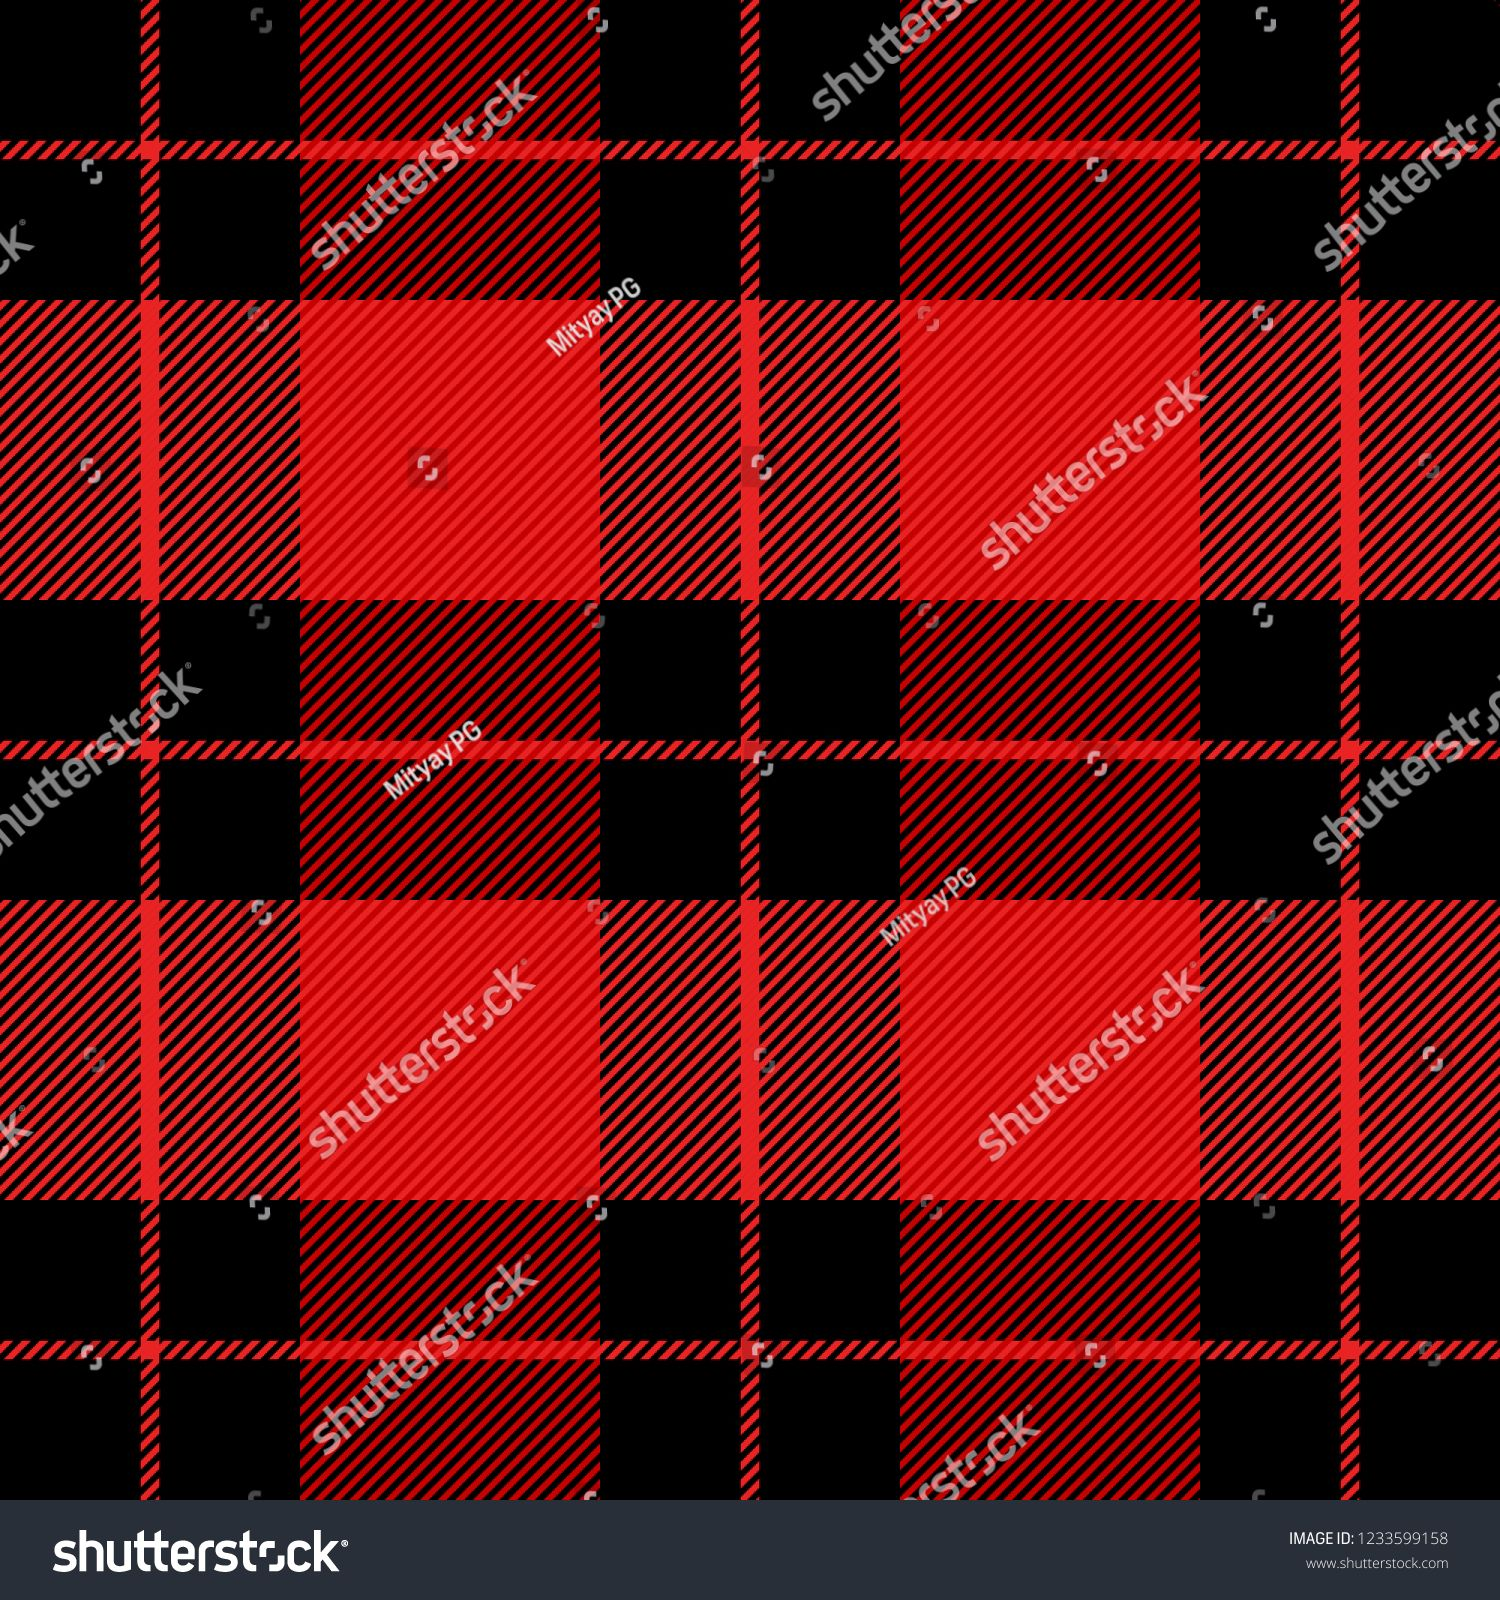 Christmas And New Year Tartan Plaid Scottish Pattern In Black And Red Cage Scottish Cage Traditional Scottish Che Tartan Plaid Tartan Christmas And New Year